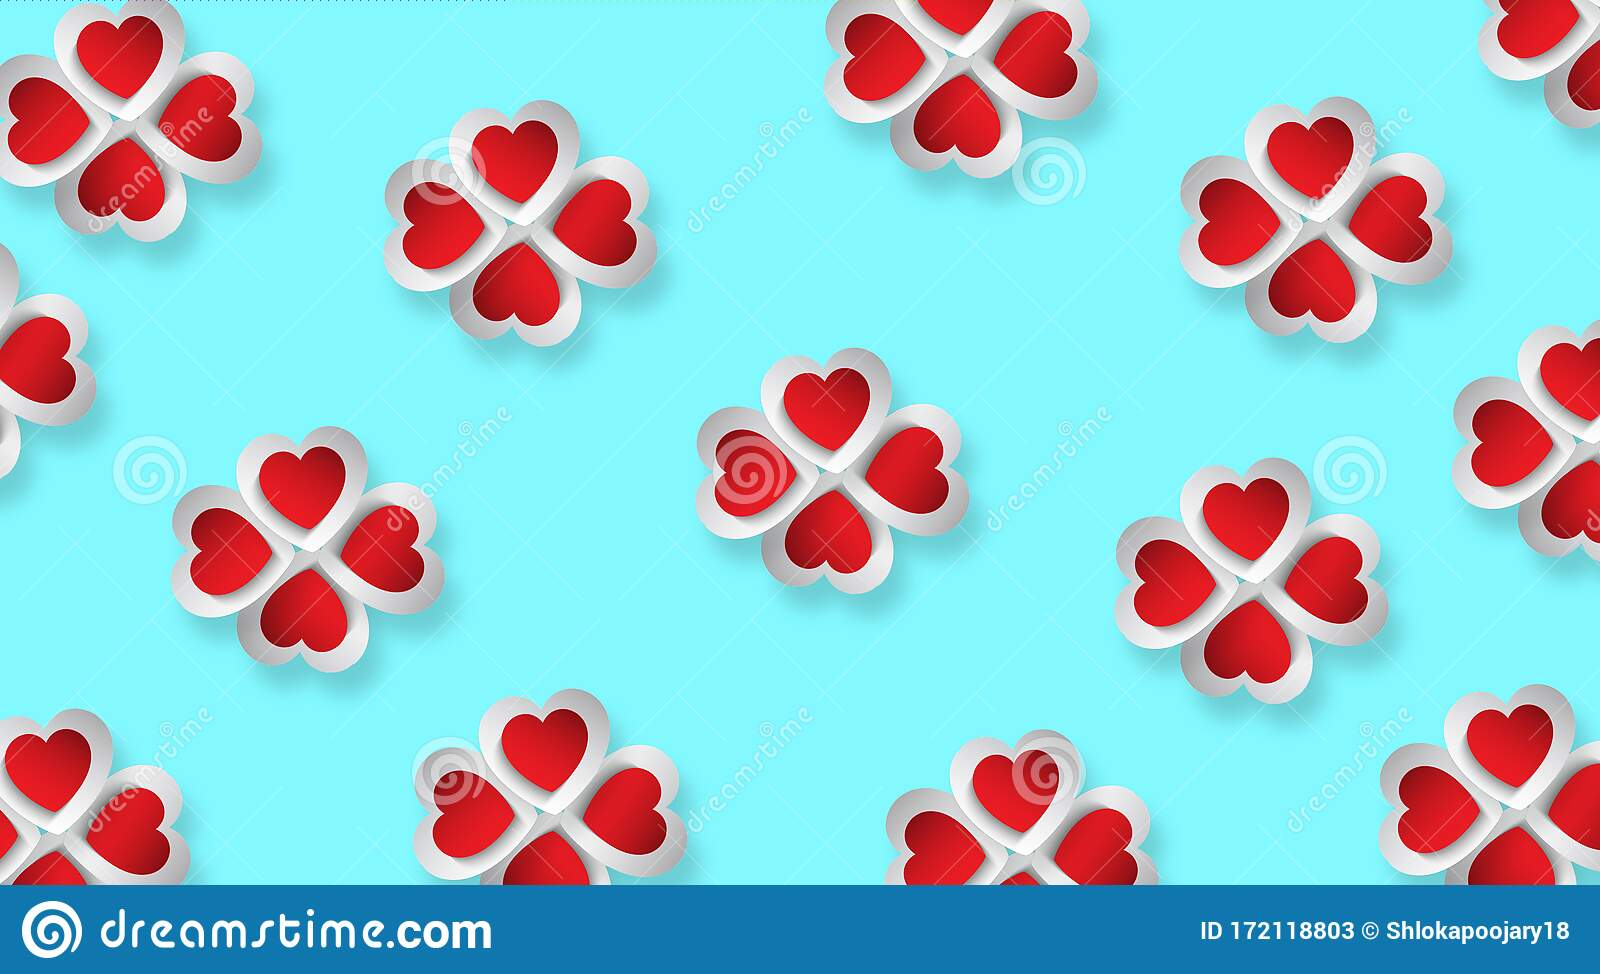 Attractive Unique Design Red And White 3d Hearts Placed In A